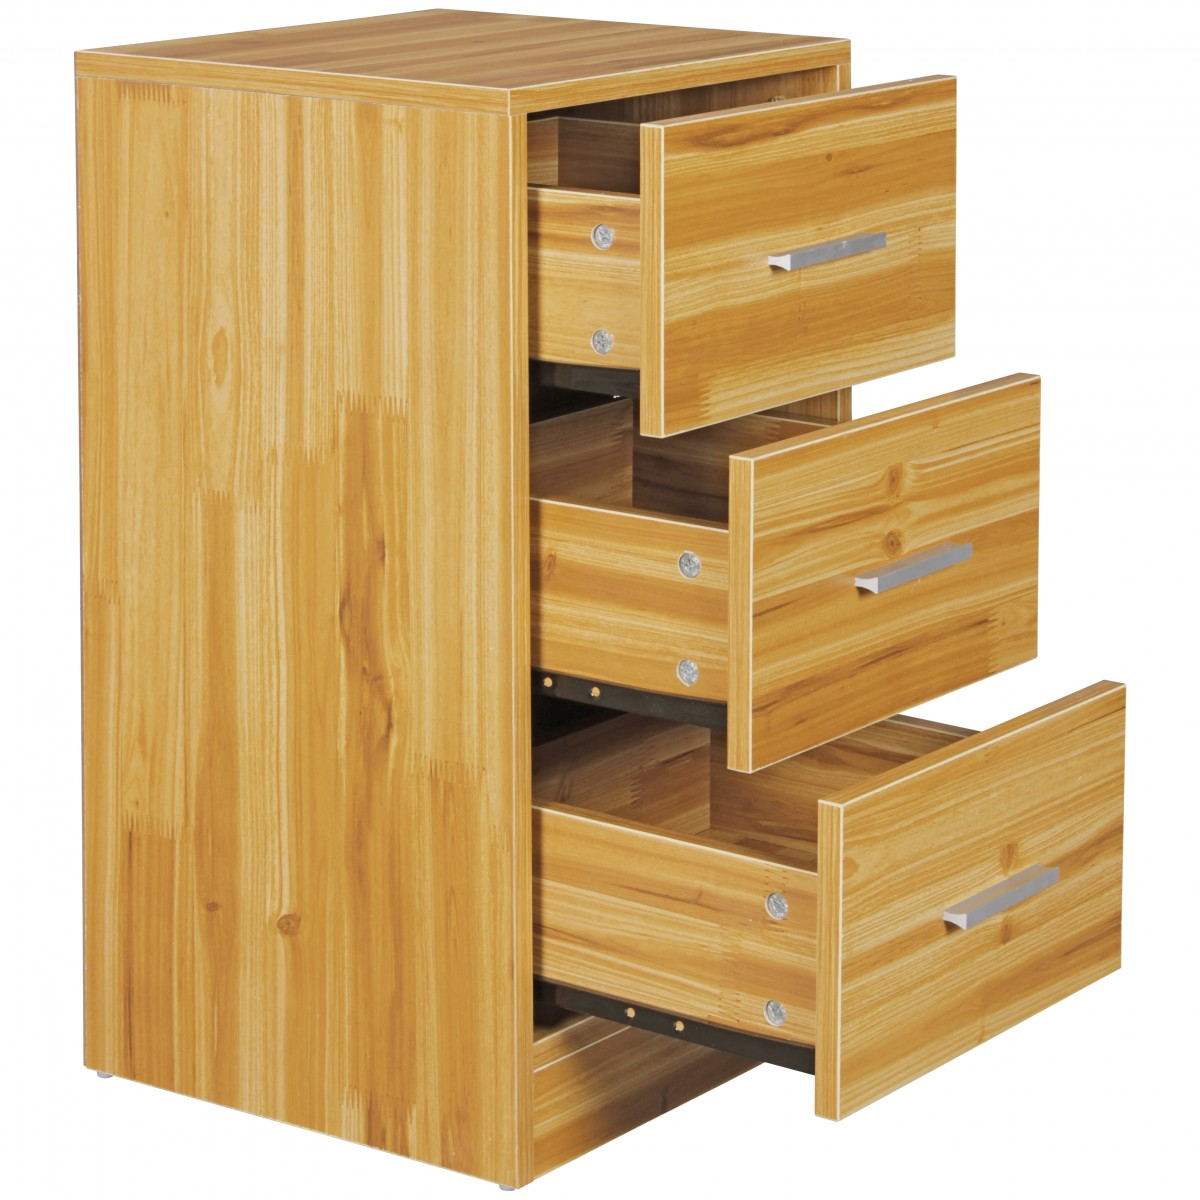 nachttisch holz schublade boxspringbett nachtschrank nachtkommode kommode nako ebay. Black Bedroom Furniture Sets. Home Design Ideas